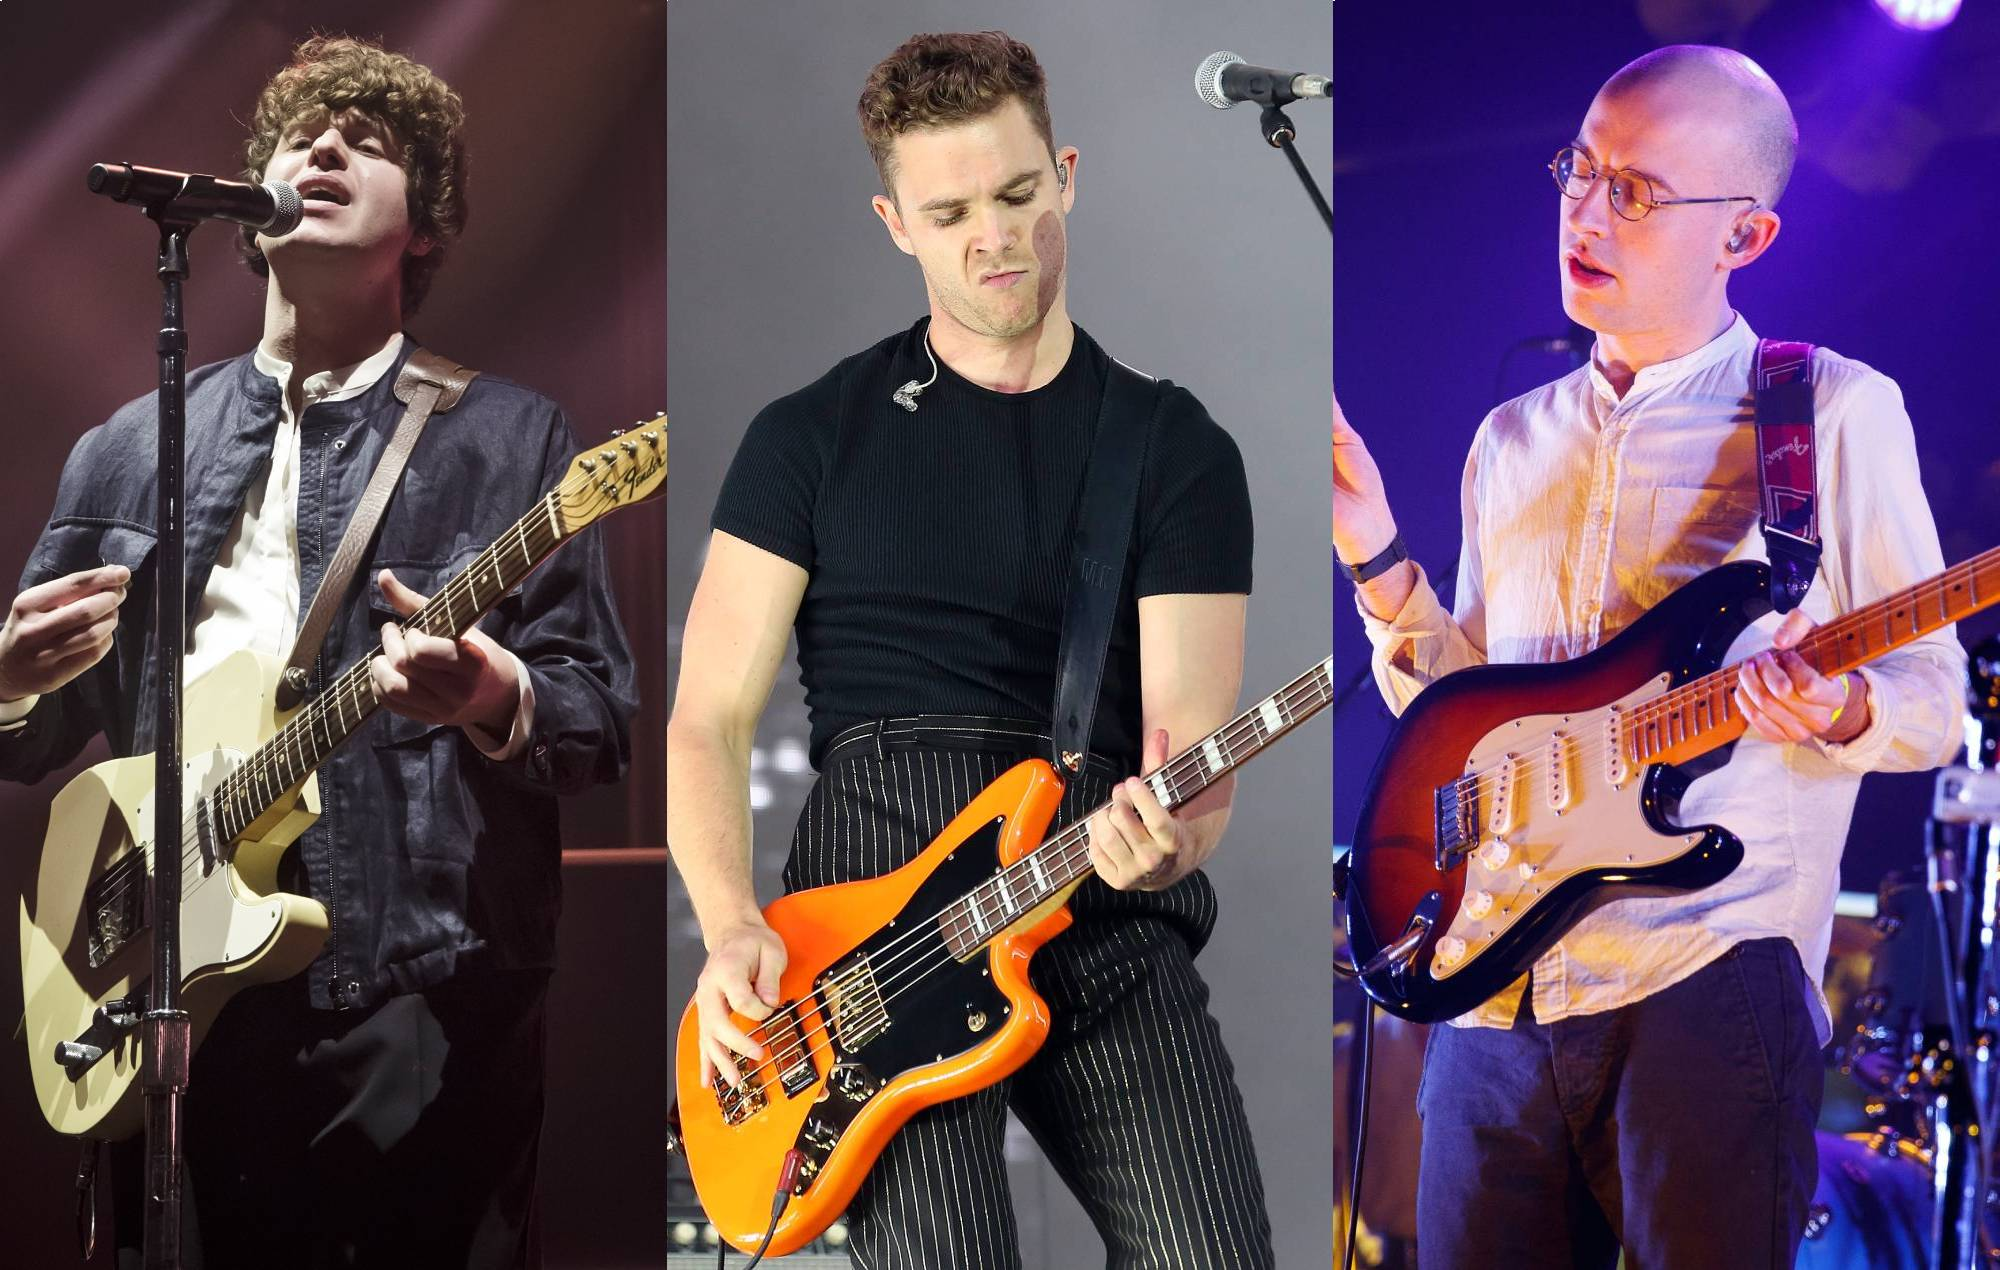 Royal Blood, Bombay Bicycle Club and The Kooks to headline Truck Festival 2021